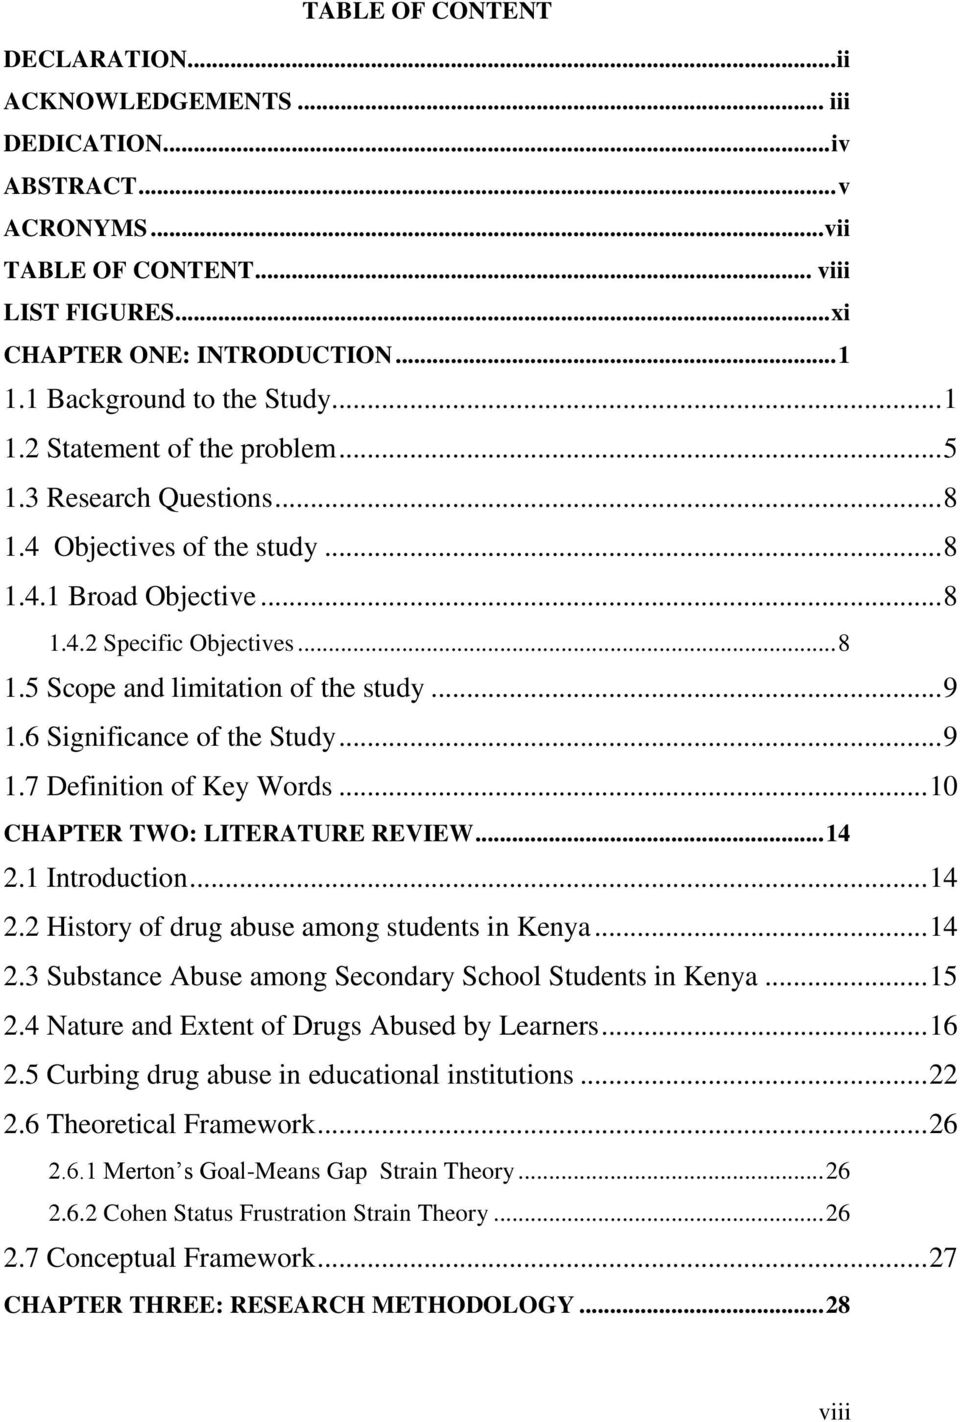 drug and substance abuse among secondary school students, in